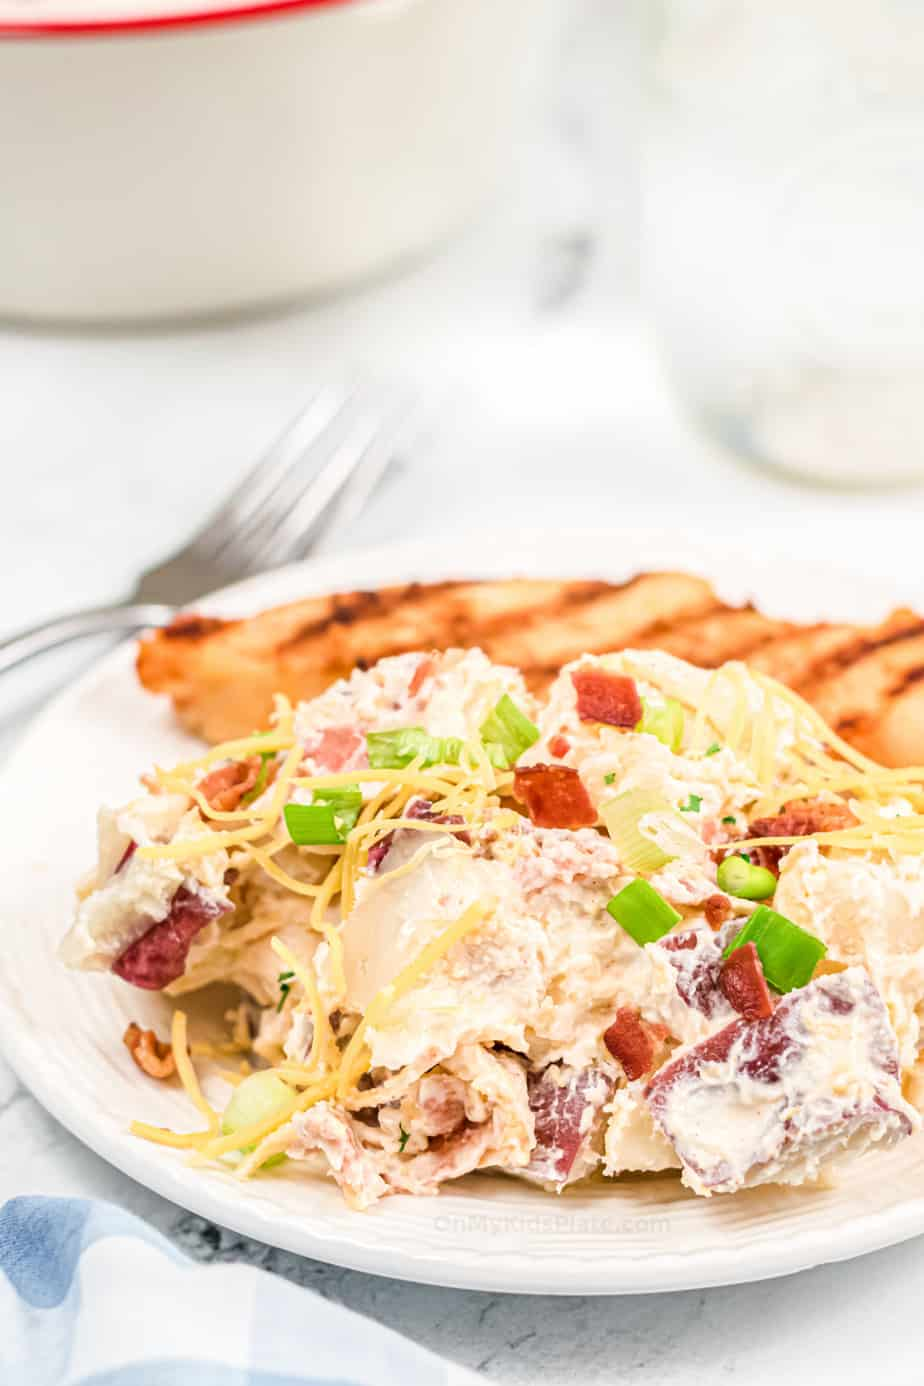 Loaded potato salad topped with cheese, bacon and green onions on a plate with grilled chicken